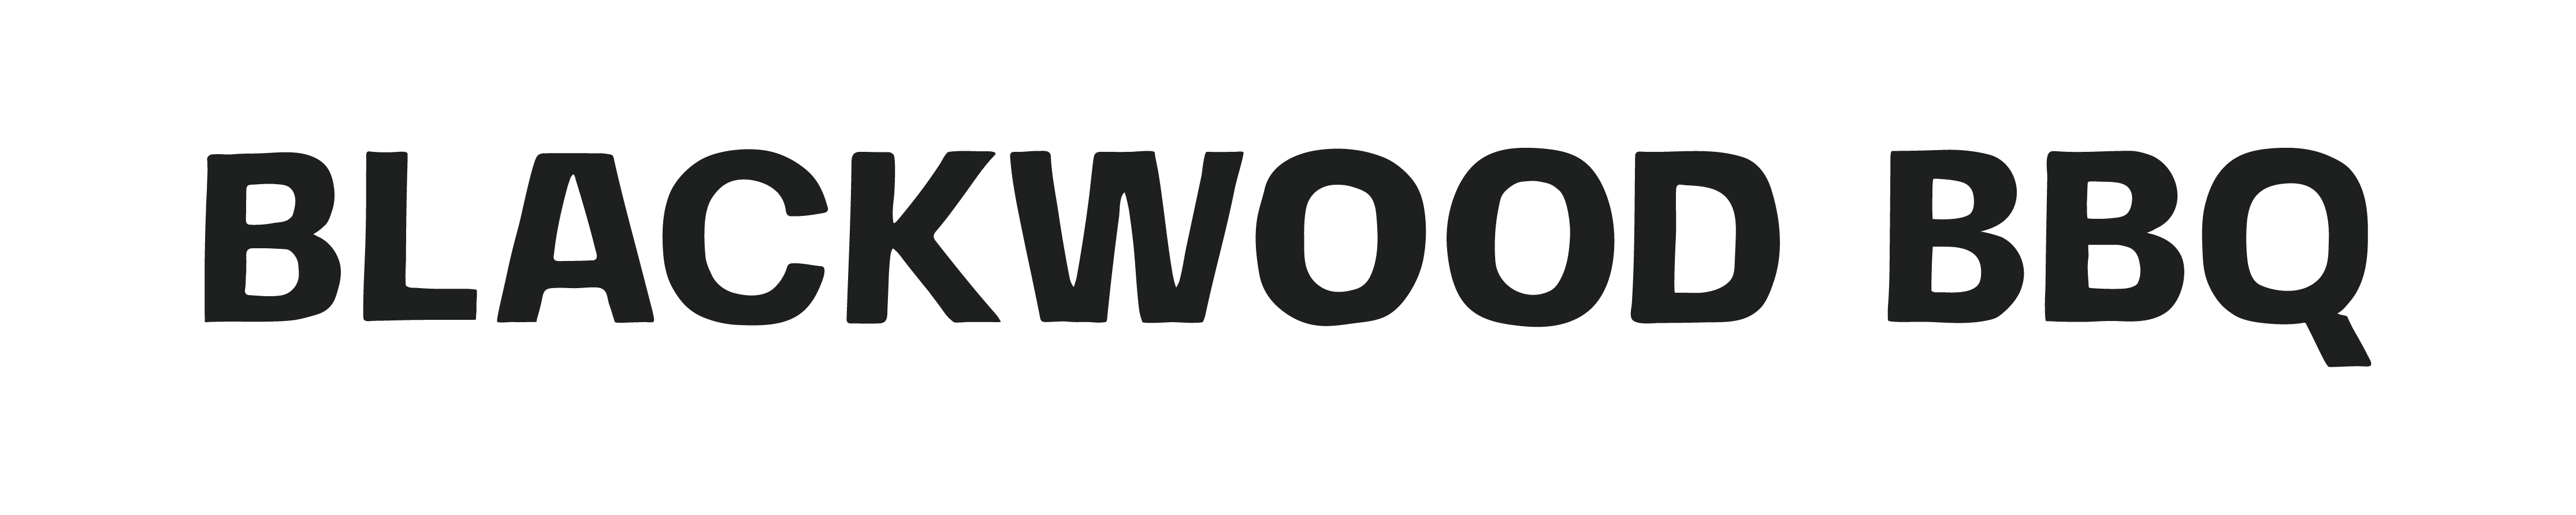 https://www.wendellaboats.com/wp-content/uploads/2019/04/2019-Blackwood-BBQ-Logo-01.png